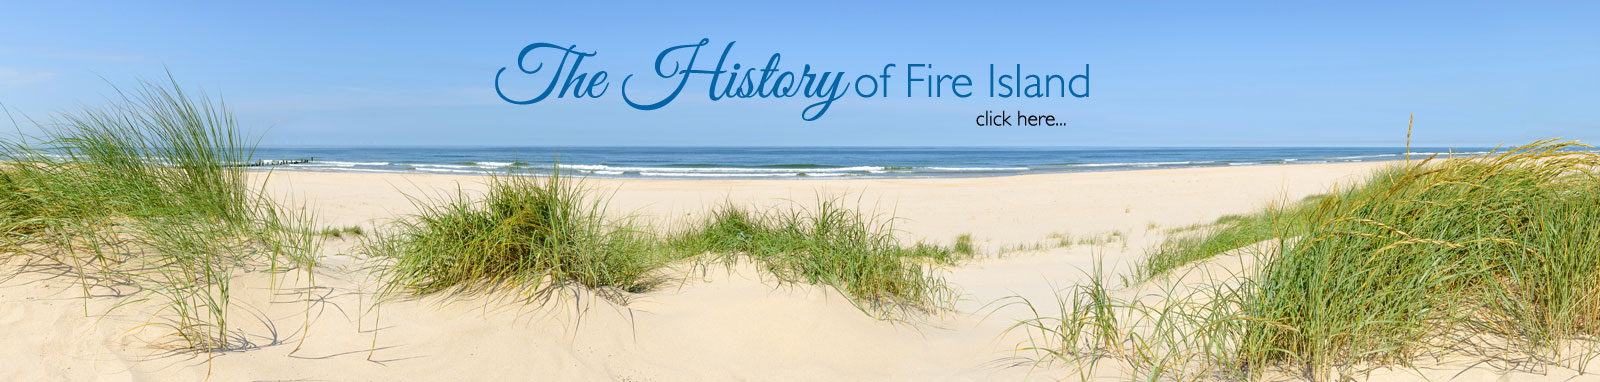 History of Fire Island